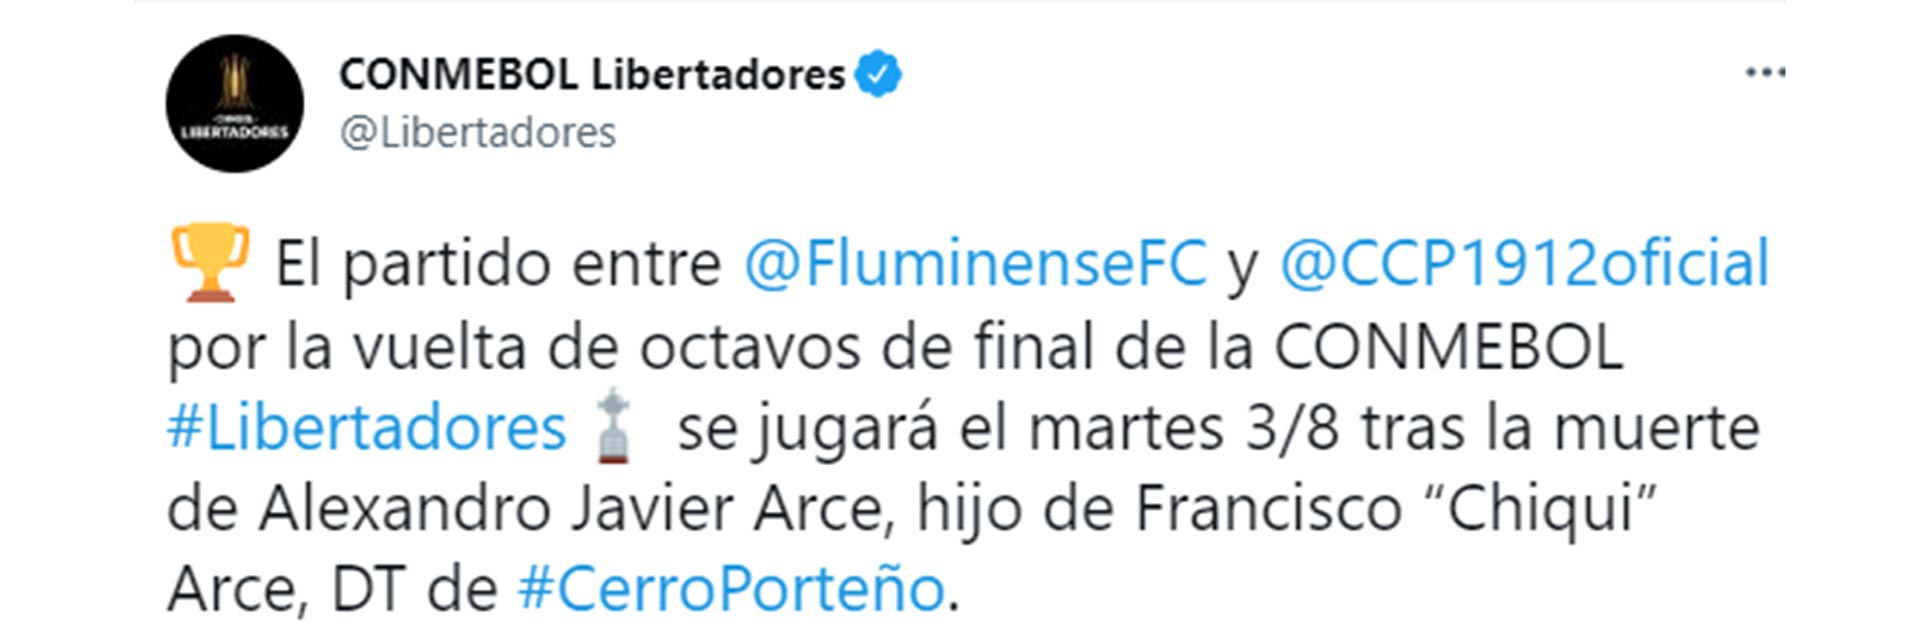 Conmebol decided to postpone the duel between Cerro Porteño and Fluminense for the return of the round of 16 of the Copa Libertadores